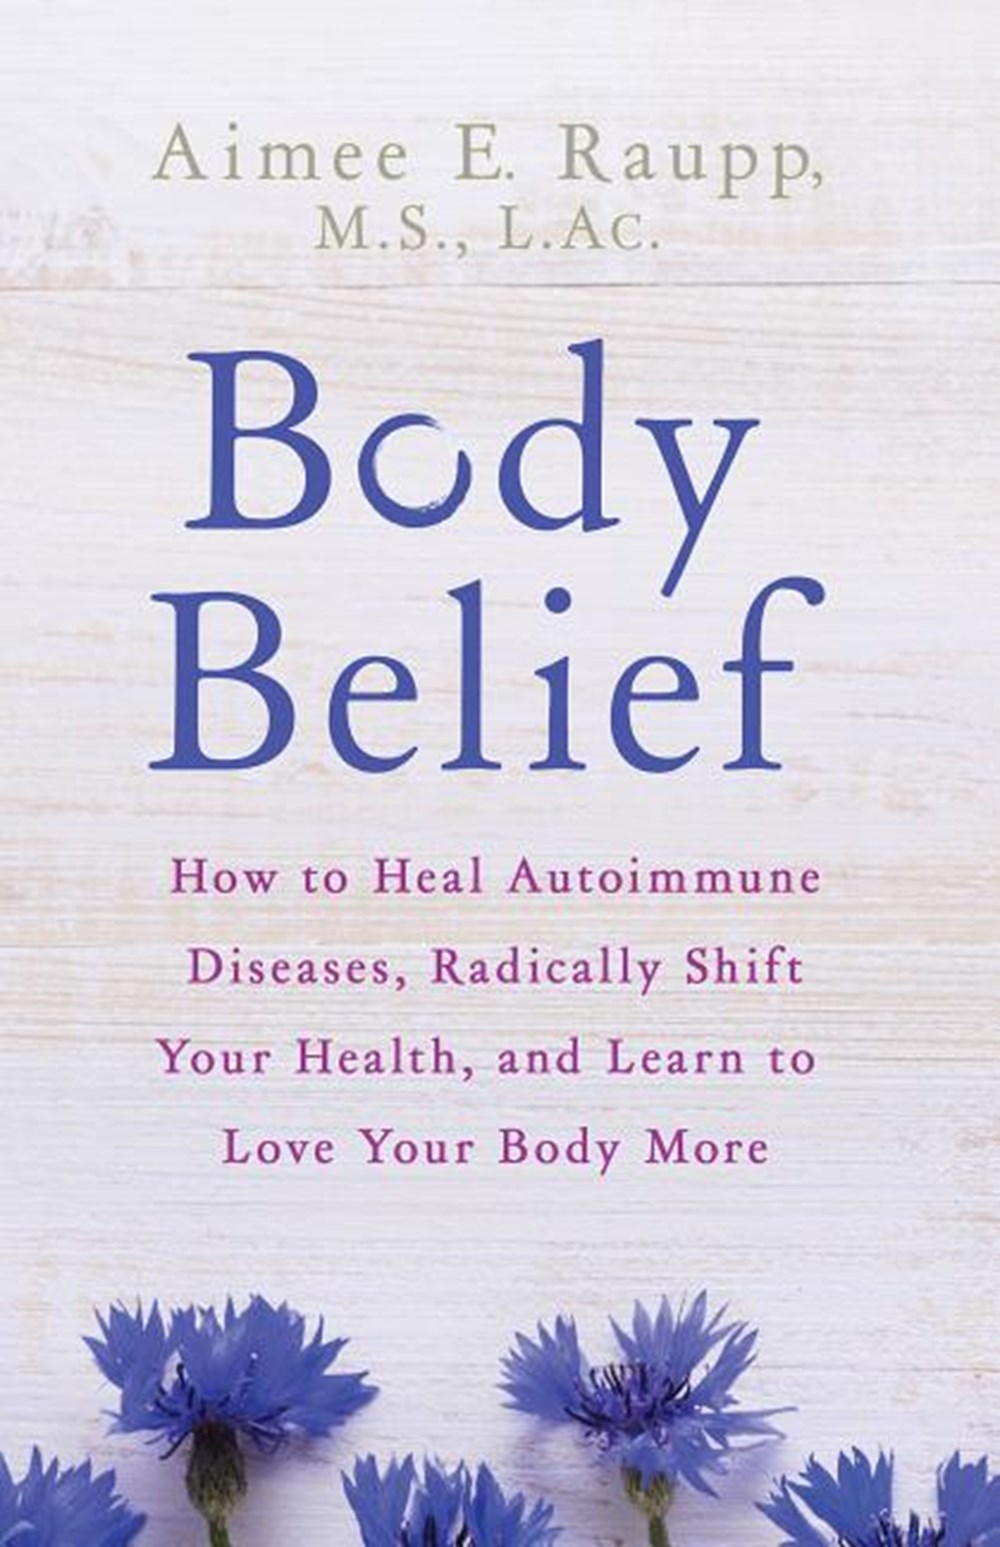 Body Belief How to Heal Autoimmune Diseases, Radically Shift Your Health, and Learn to Love Your Bod